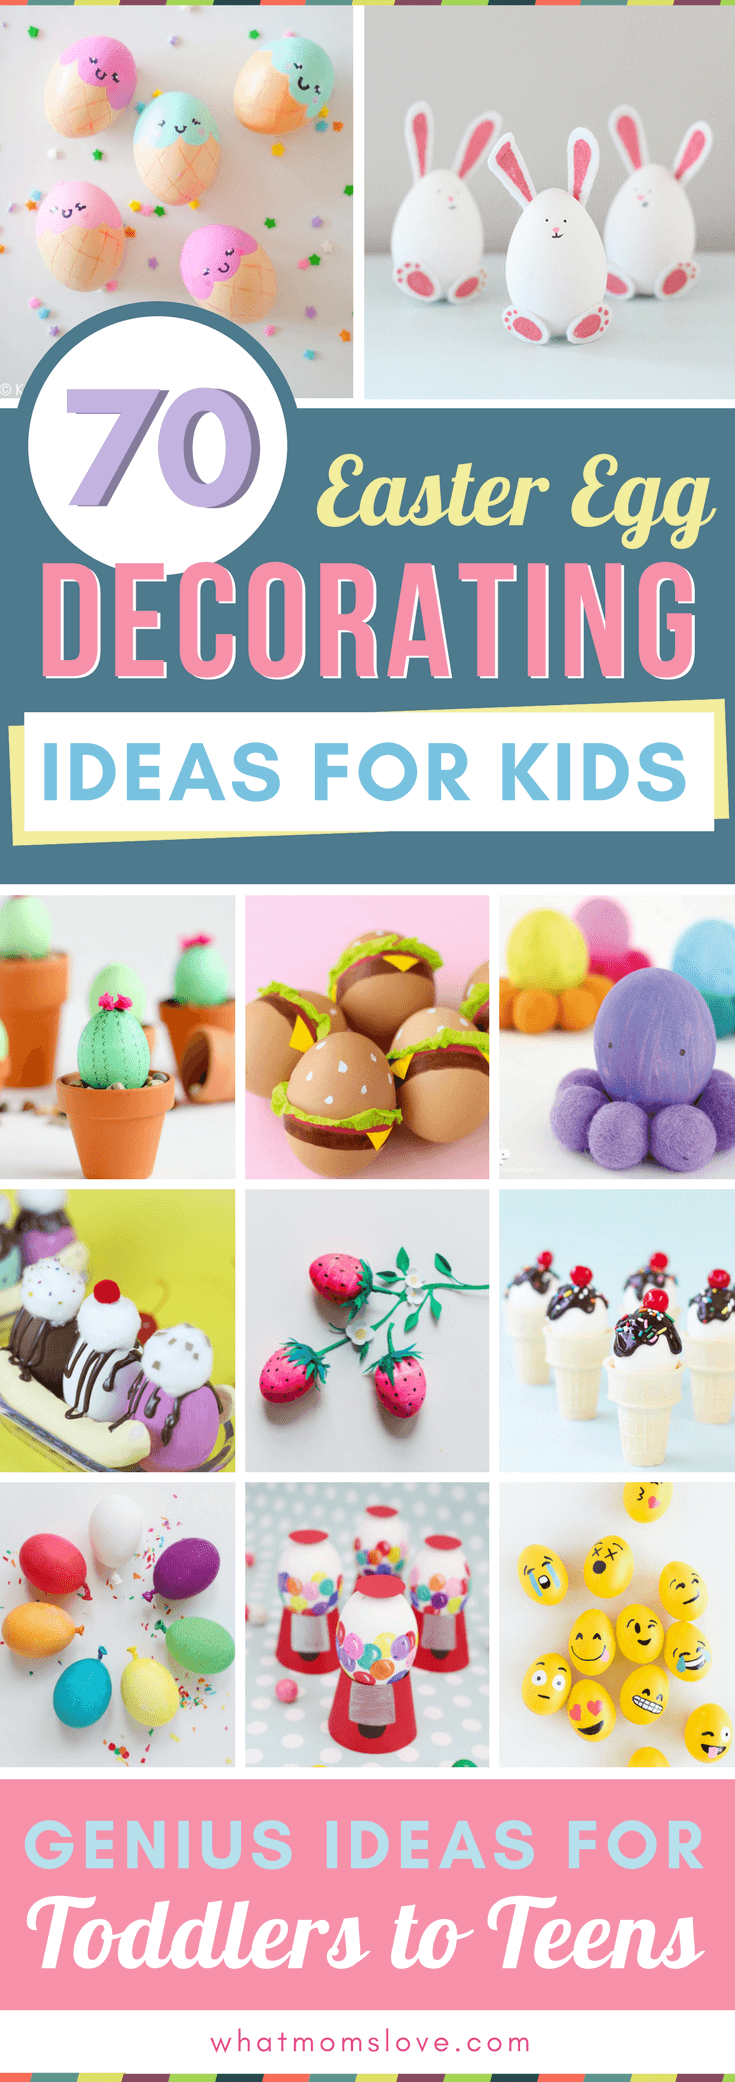 Easter Egg Decorating Ideas For Kids 70 Creative Ways To Decorate Your Eggs What Moms Love